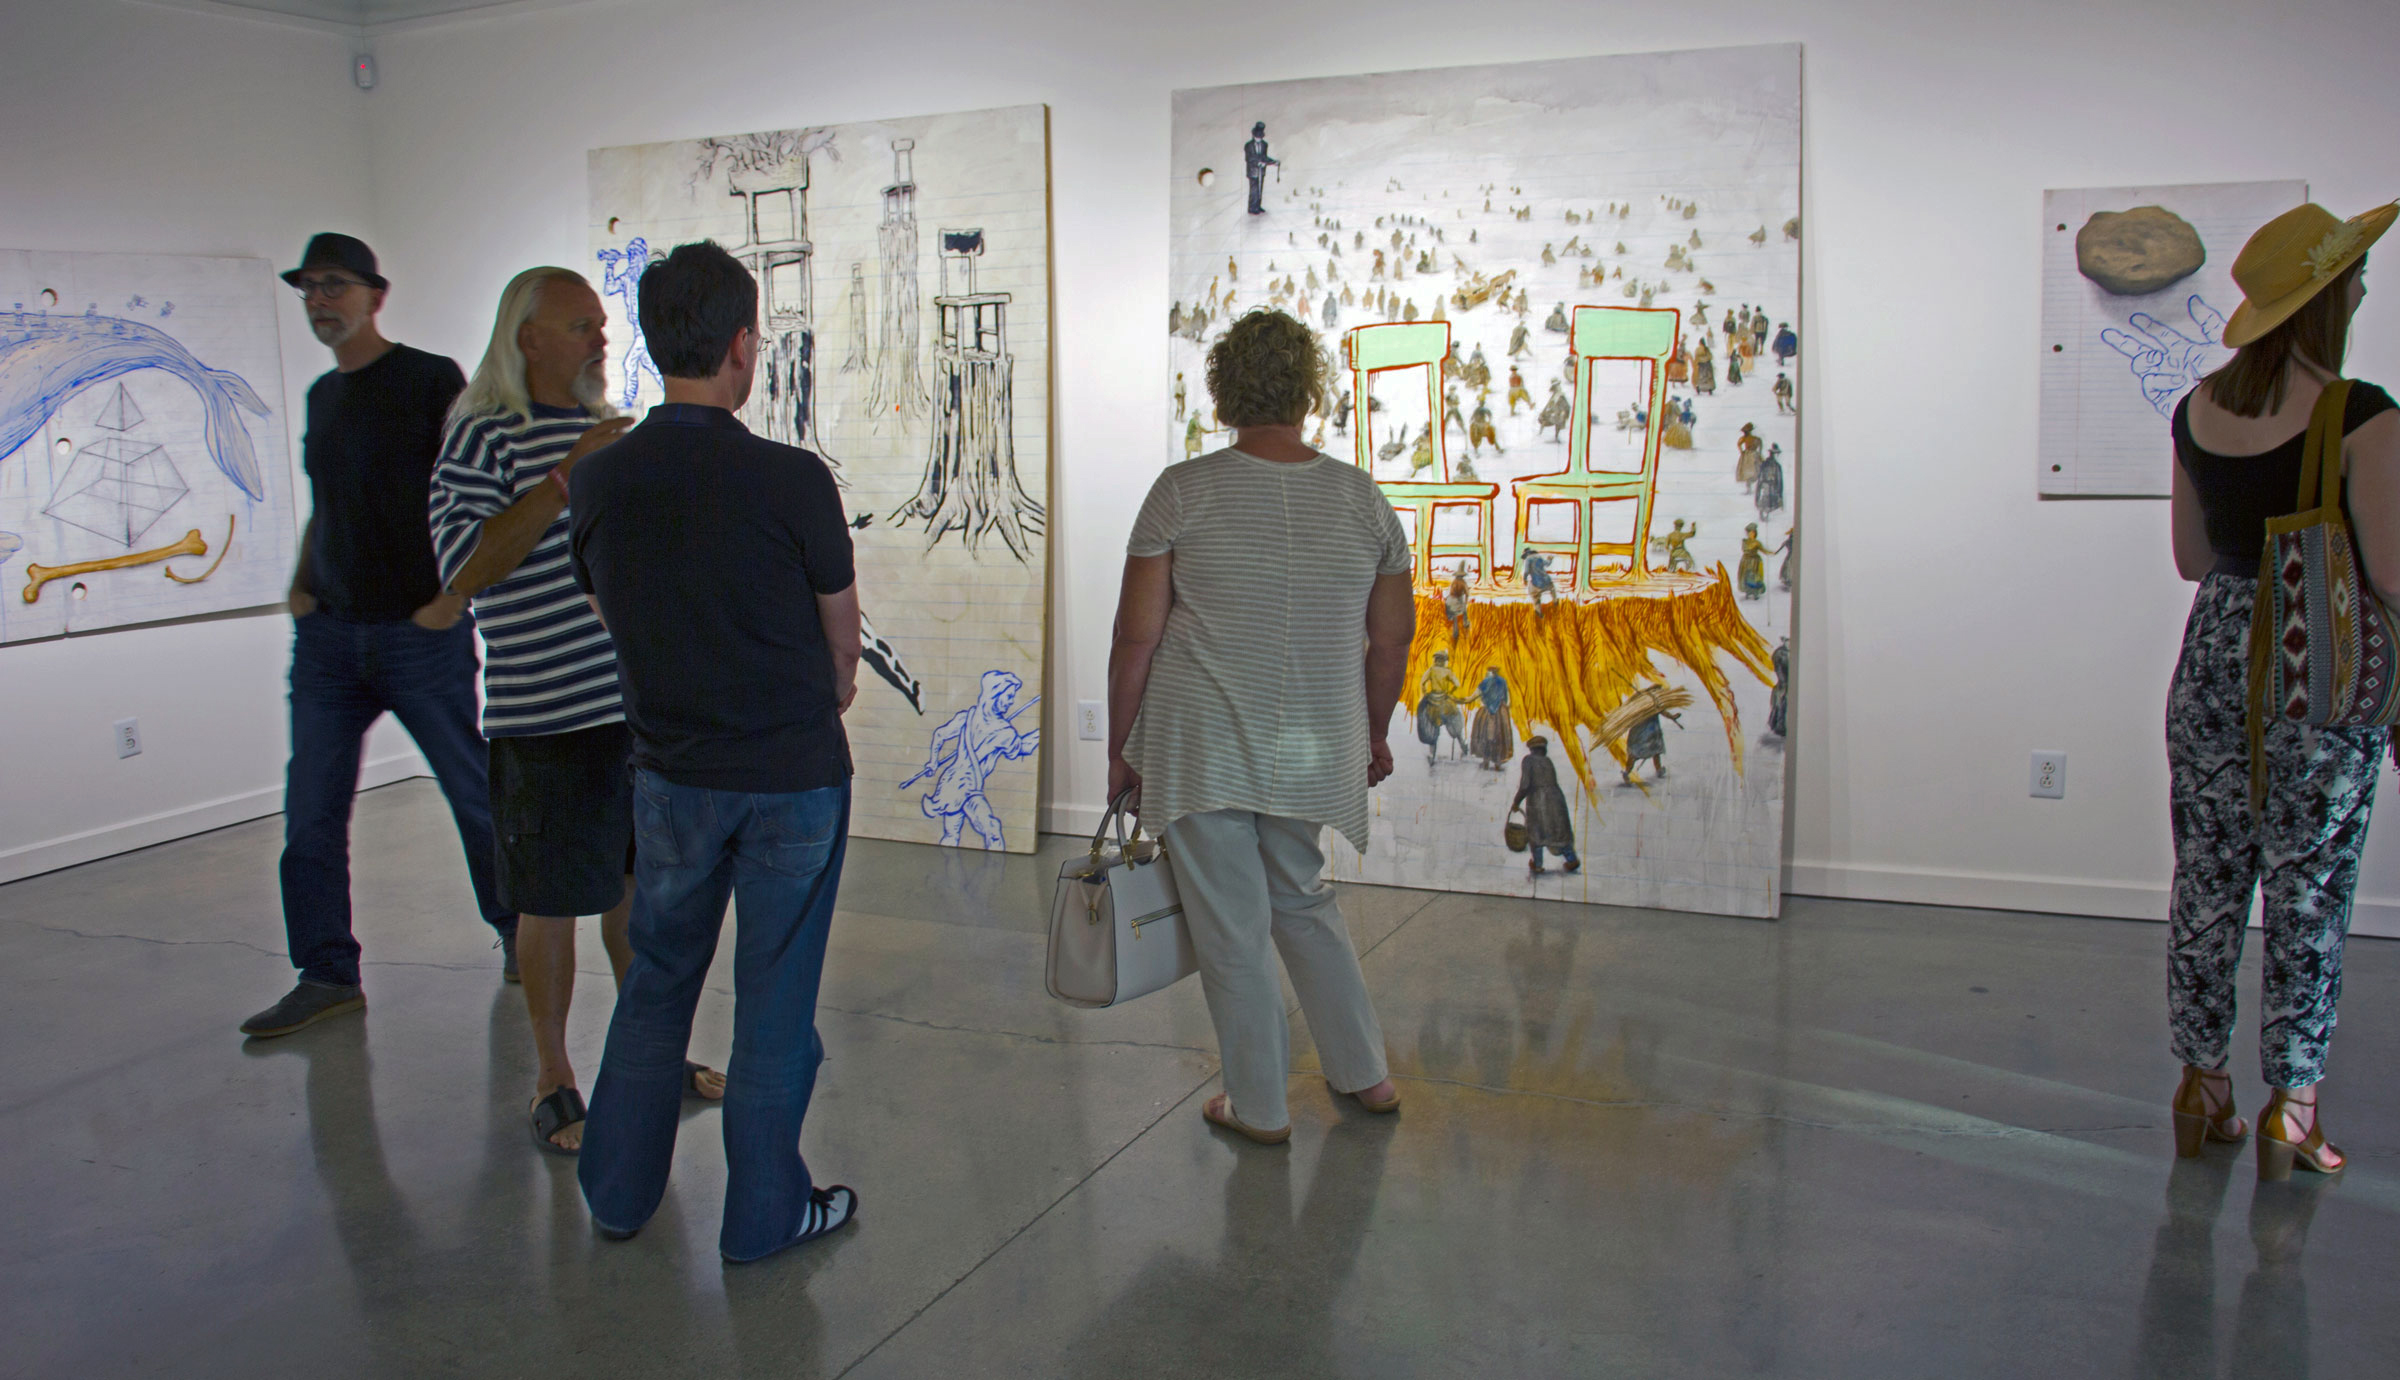 cropped-sized-adjusted-group1-at-show